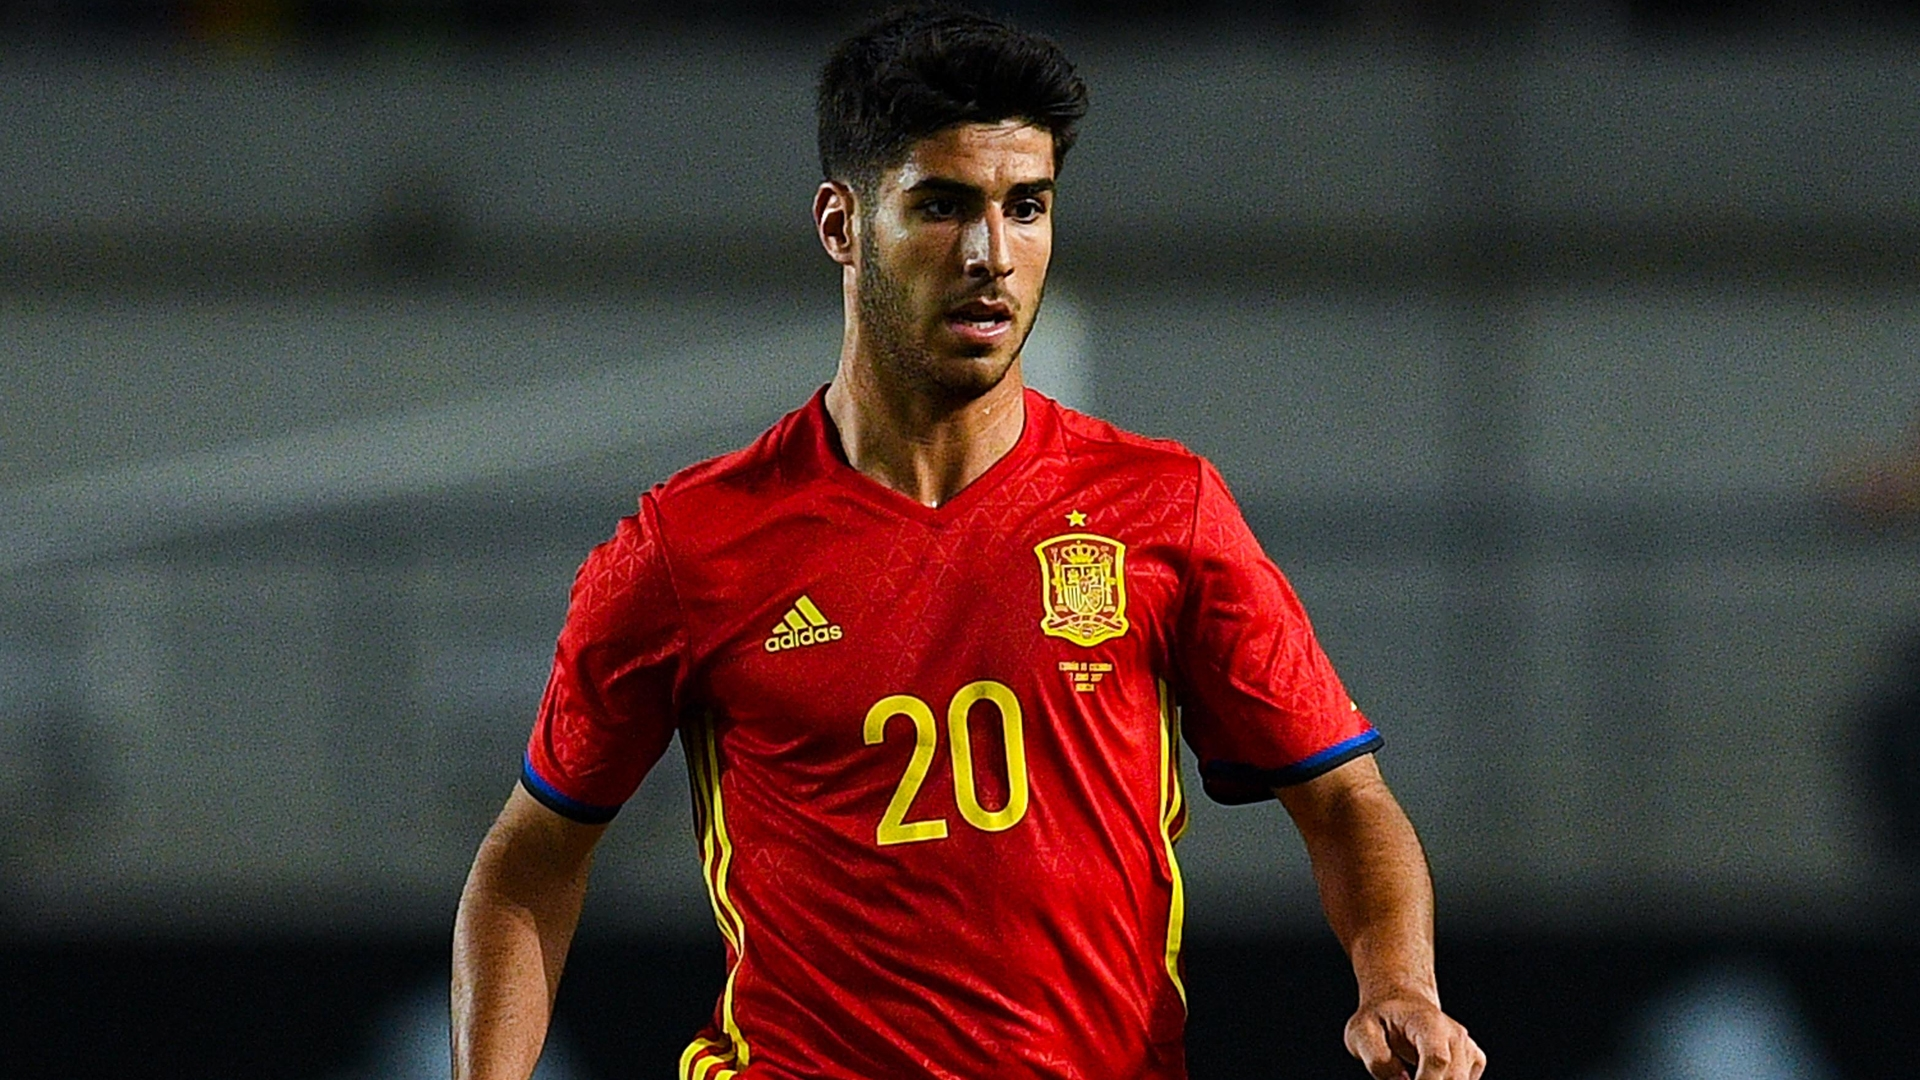 The Under-21 Spain side secured a clear 5-0 victory over Macedonia. Perhaps most impressive on the night was Marco Asensio who managed to score a hat-trick.